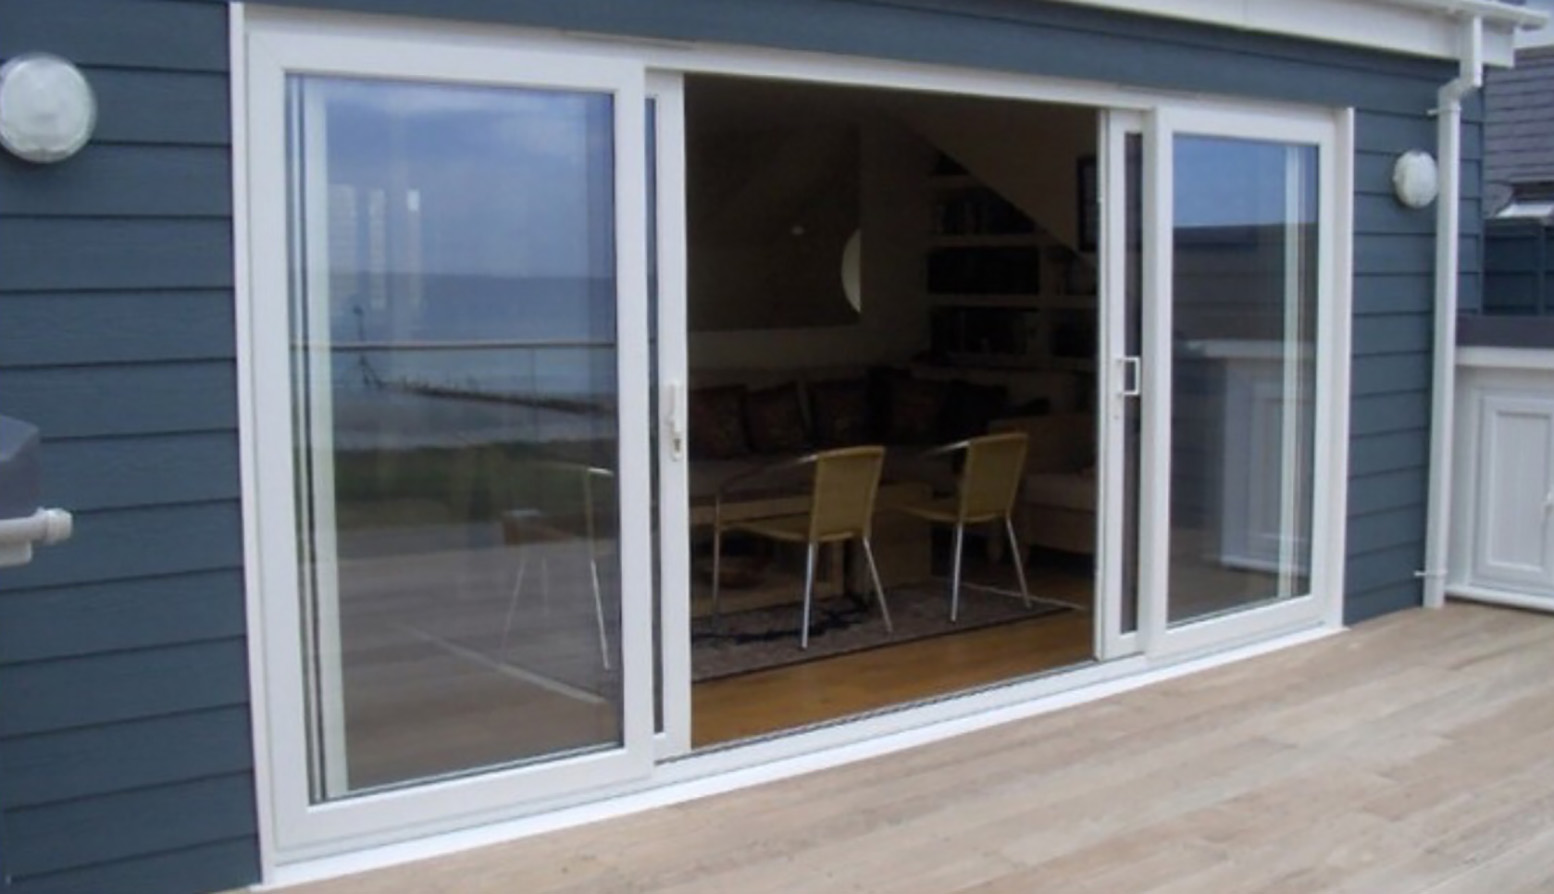 894 #64492D Patio Doors Specialists Choices Windows Of Tipton picture/photo Terrace Doors 2591554